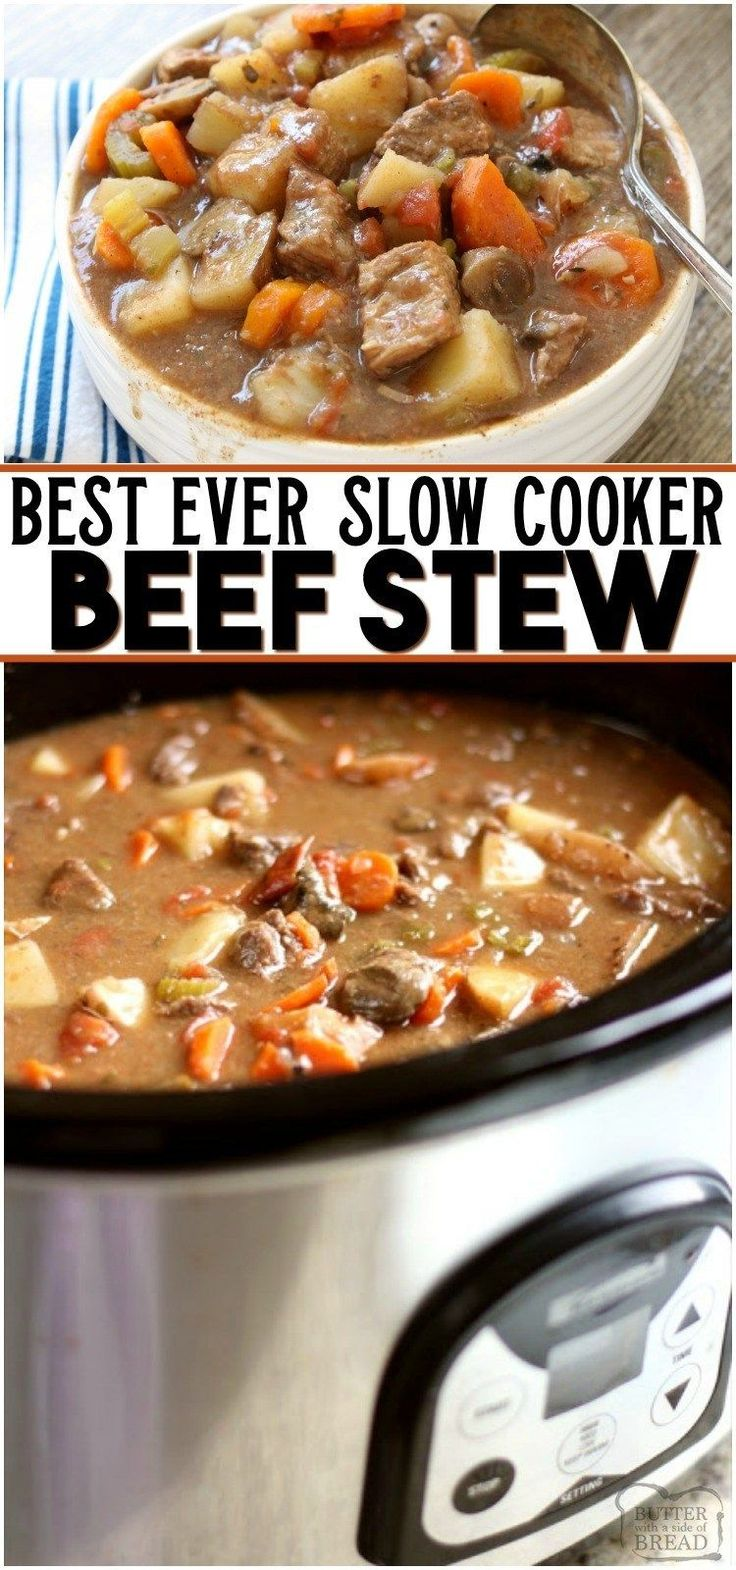 Mar 25, 2020 – Beef Stew Crock Pot recipe made with tender chunks of beef, loads of vegetables and a simple mixture of b…